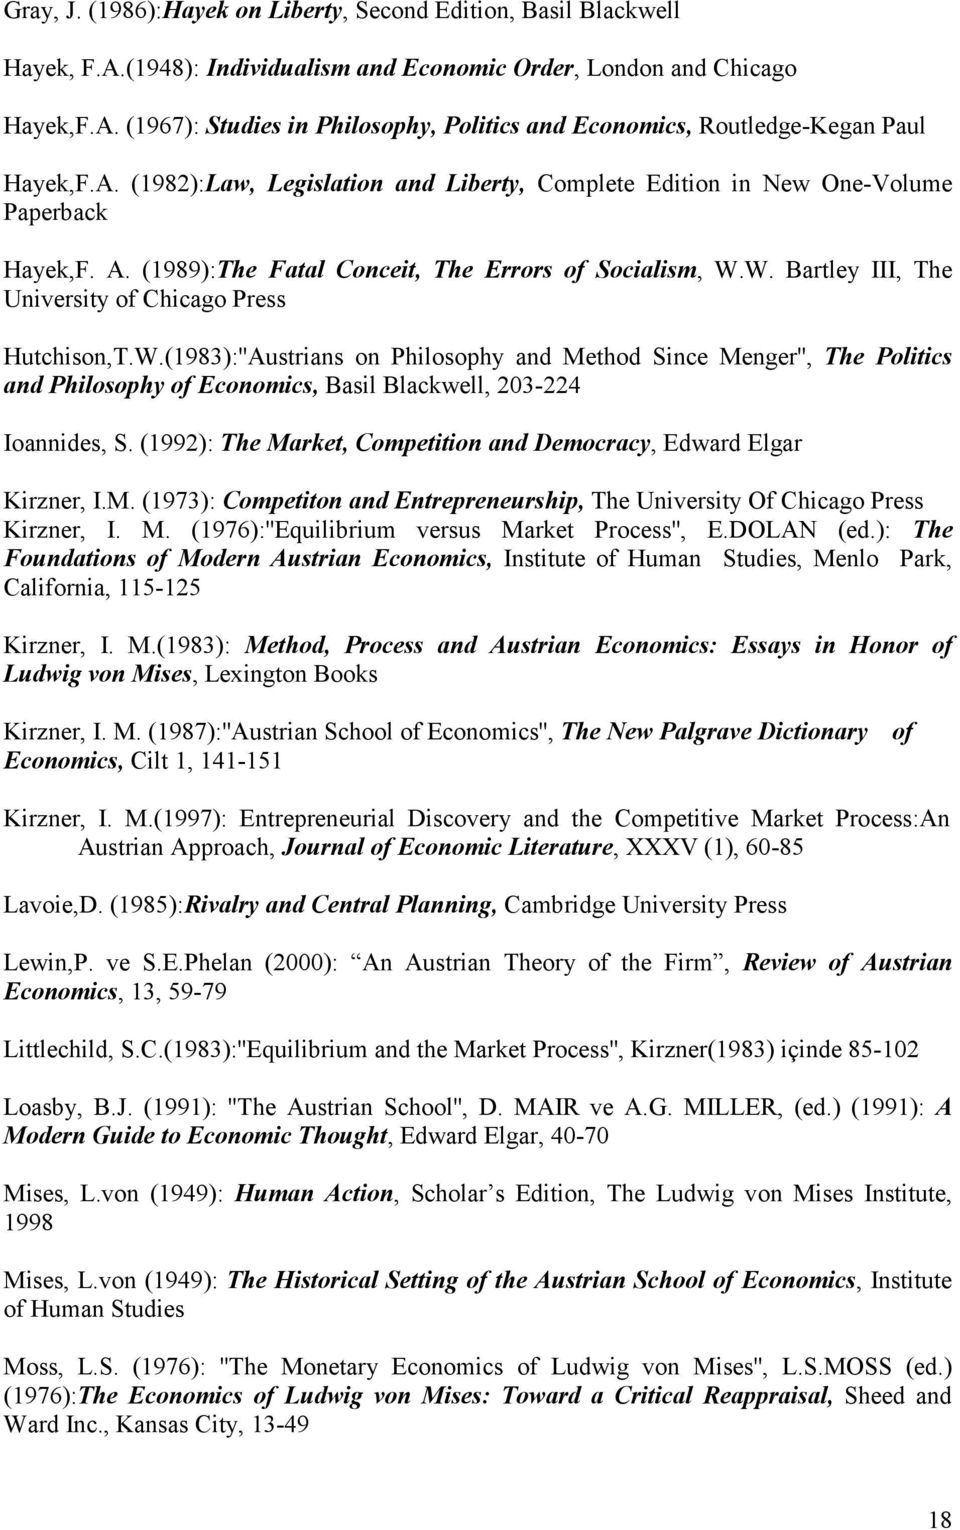 W. Bartley III, The University of Chicago Press Hutchison,T.W.(1983):''Austrians on Philosophy and Method Since Menger'', The Politics and Philosophy of Economics, Basil Blackwell, 203-224 Ioannides, S.